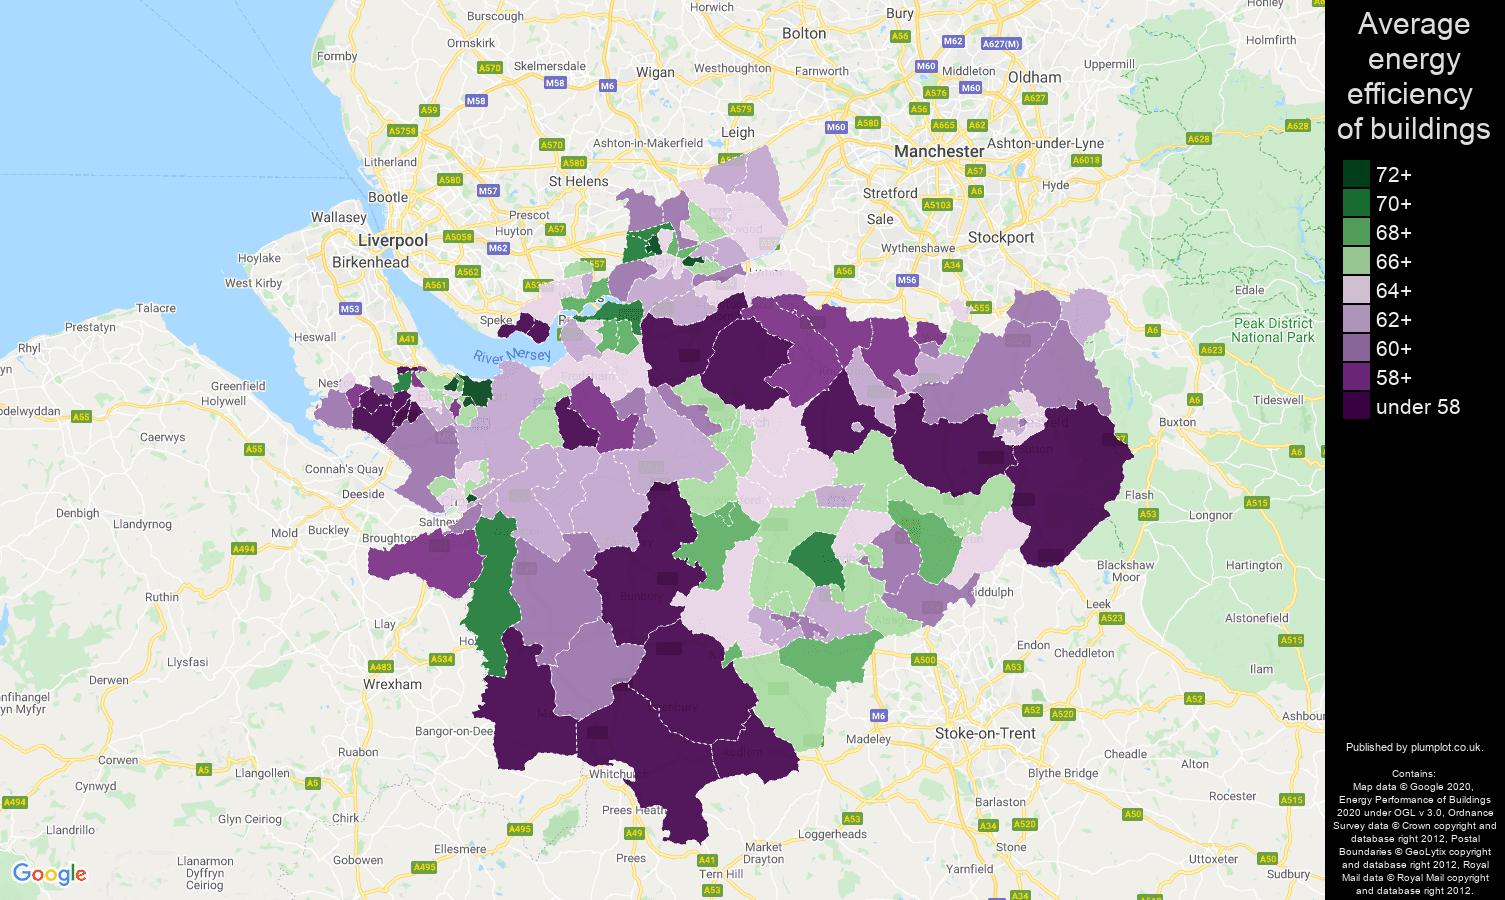 Cheshire map of energy efficiency of properties